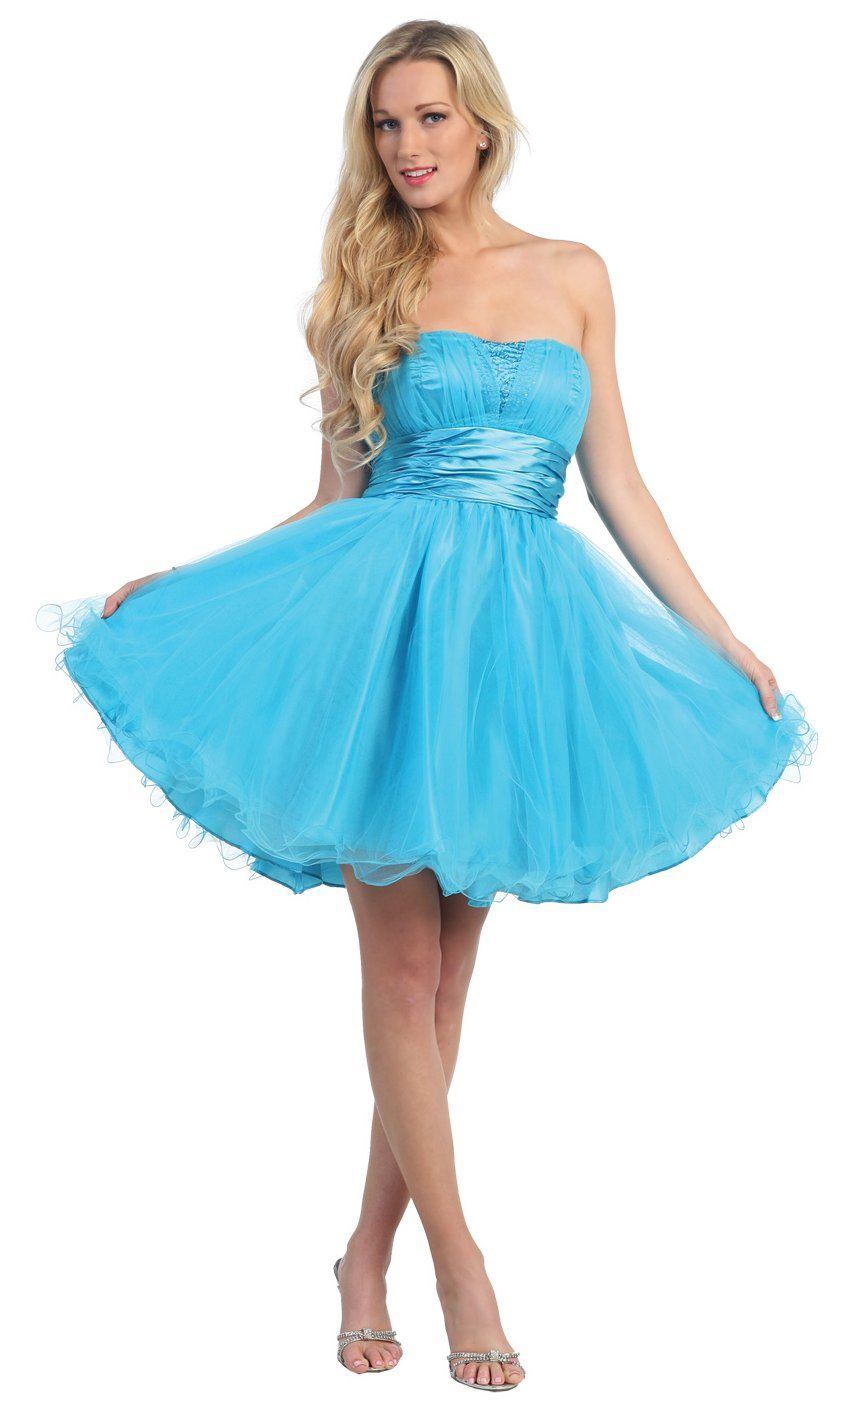 Short Strapless Turquoise Homecoming Gown Tulle Skirt Satin Waist ...